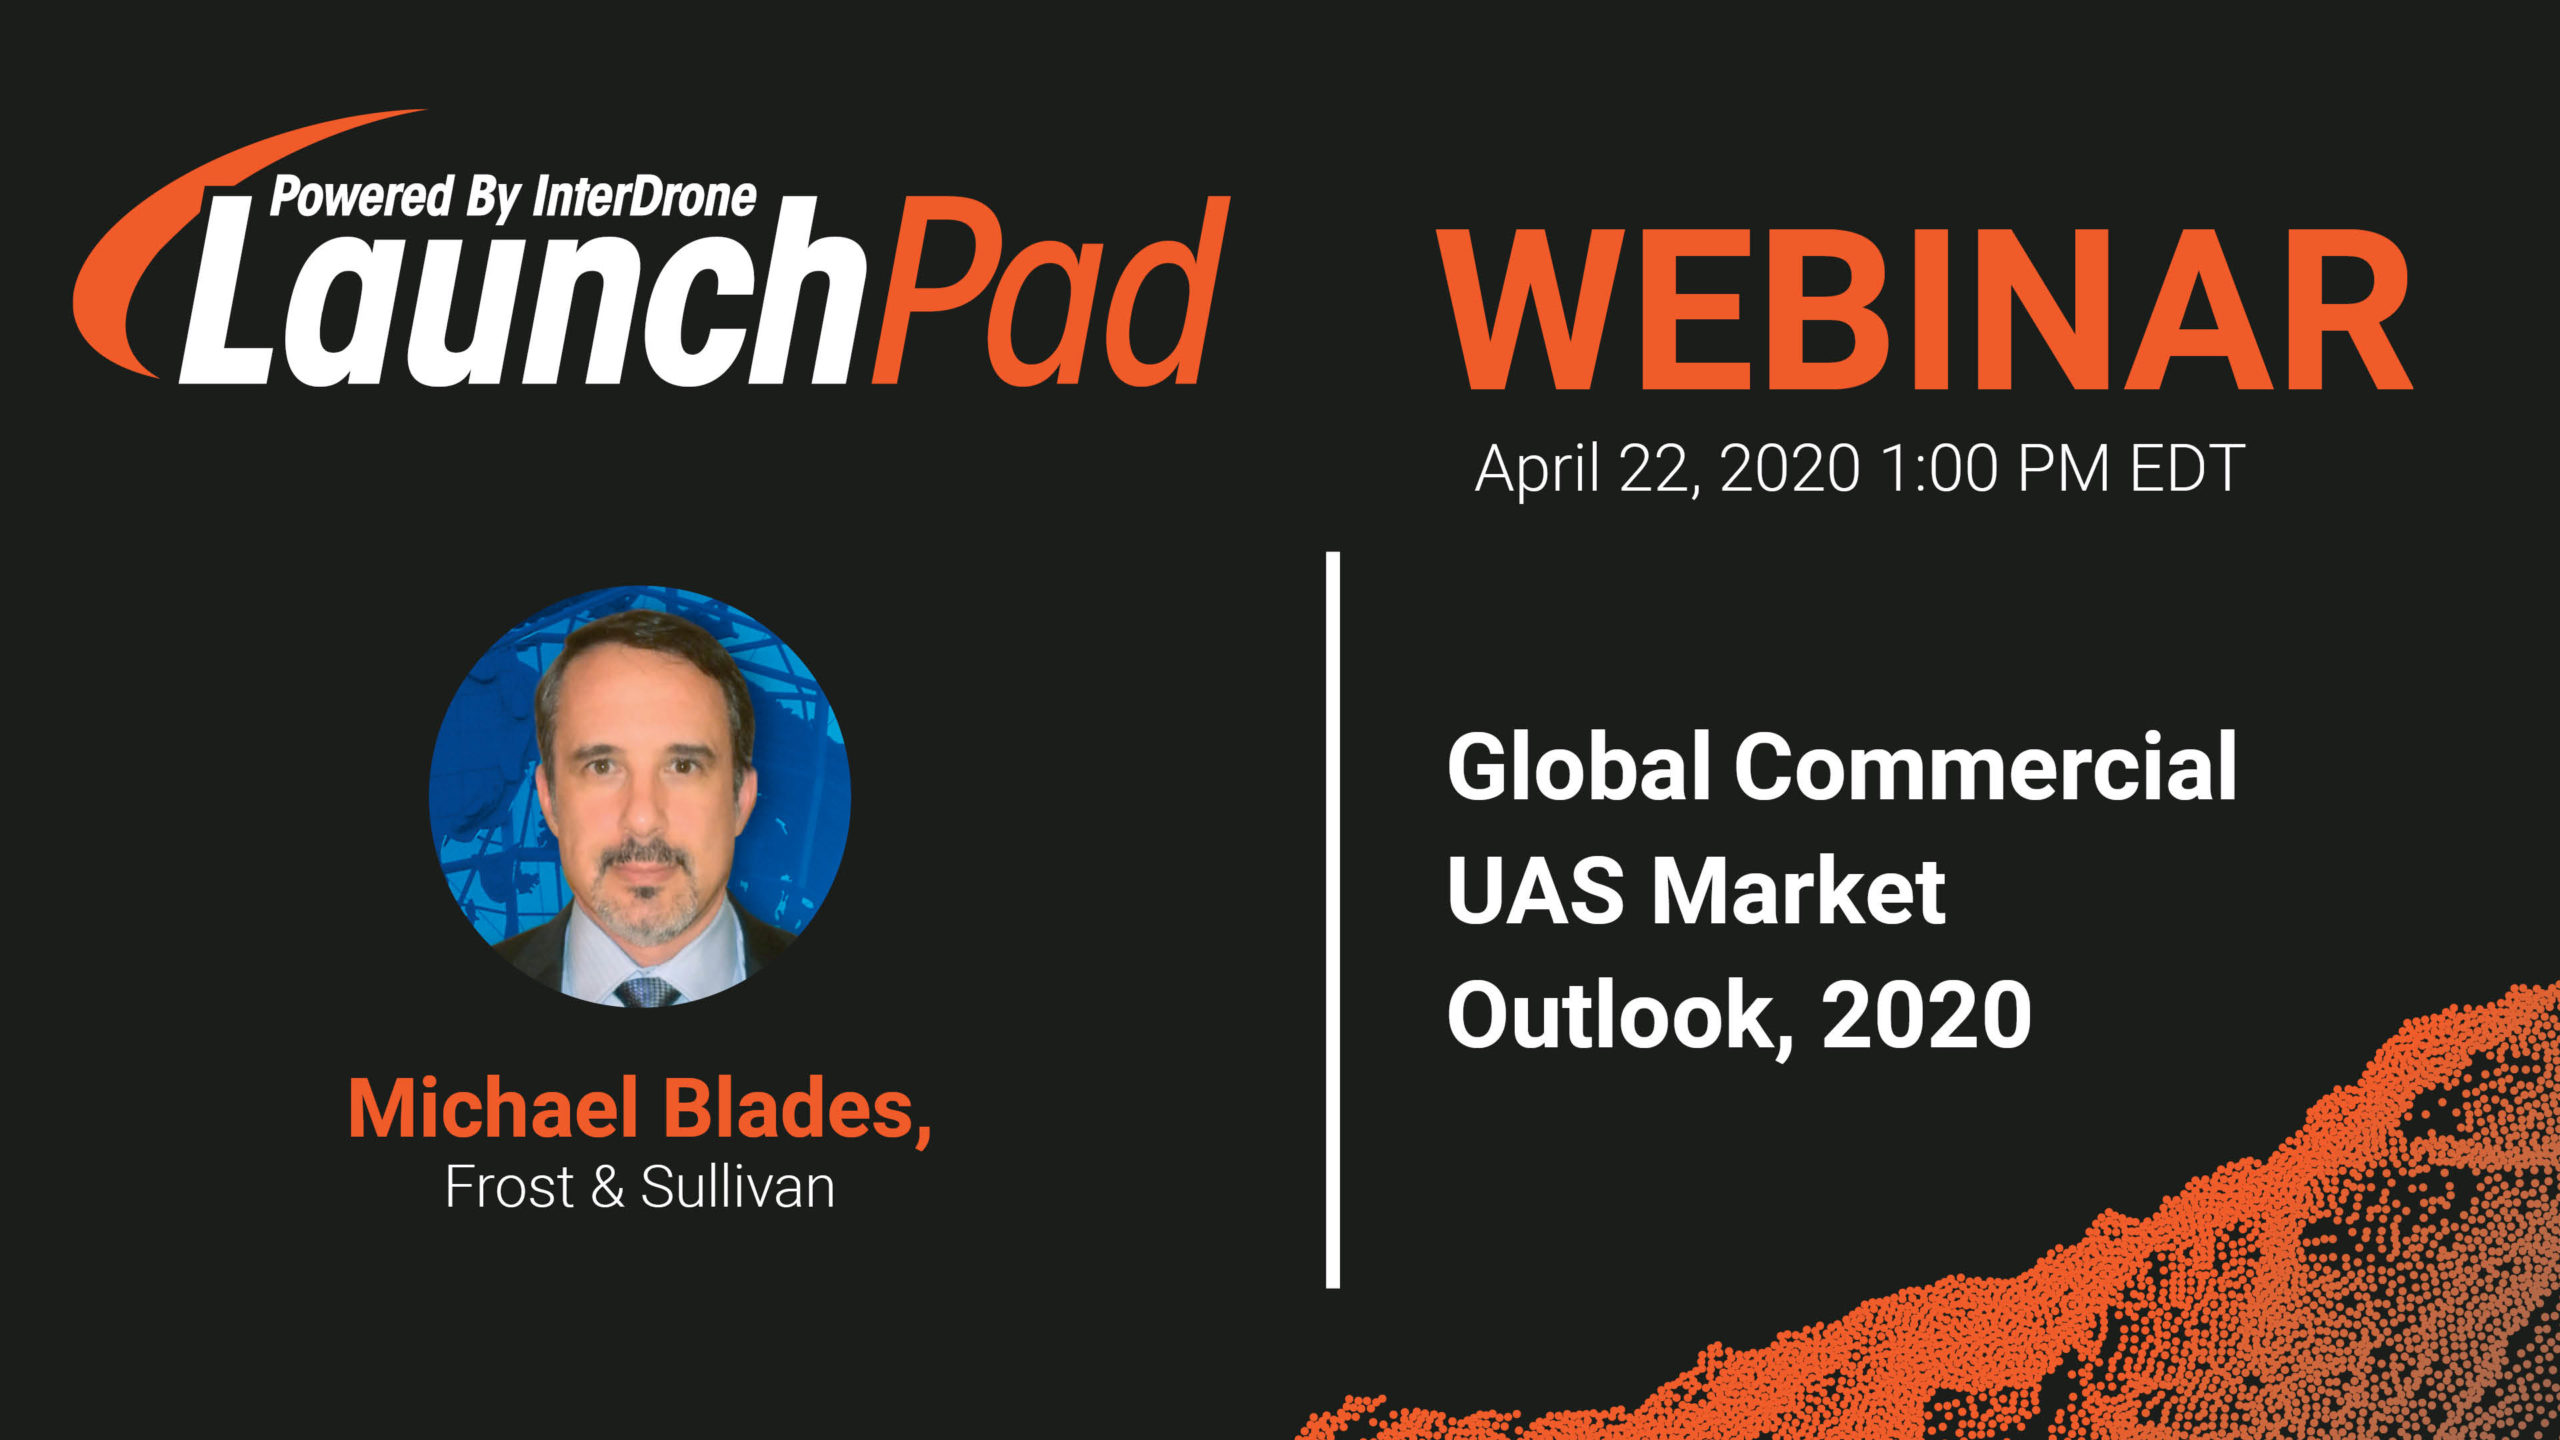 global-commercial-uas-market-outlook-2020-interdrone-webinar-with-michael-blades-of-frost-sullivan